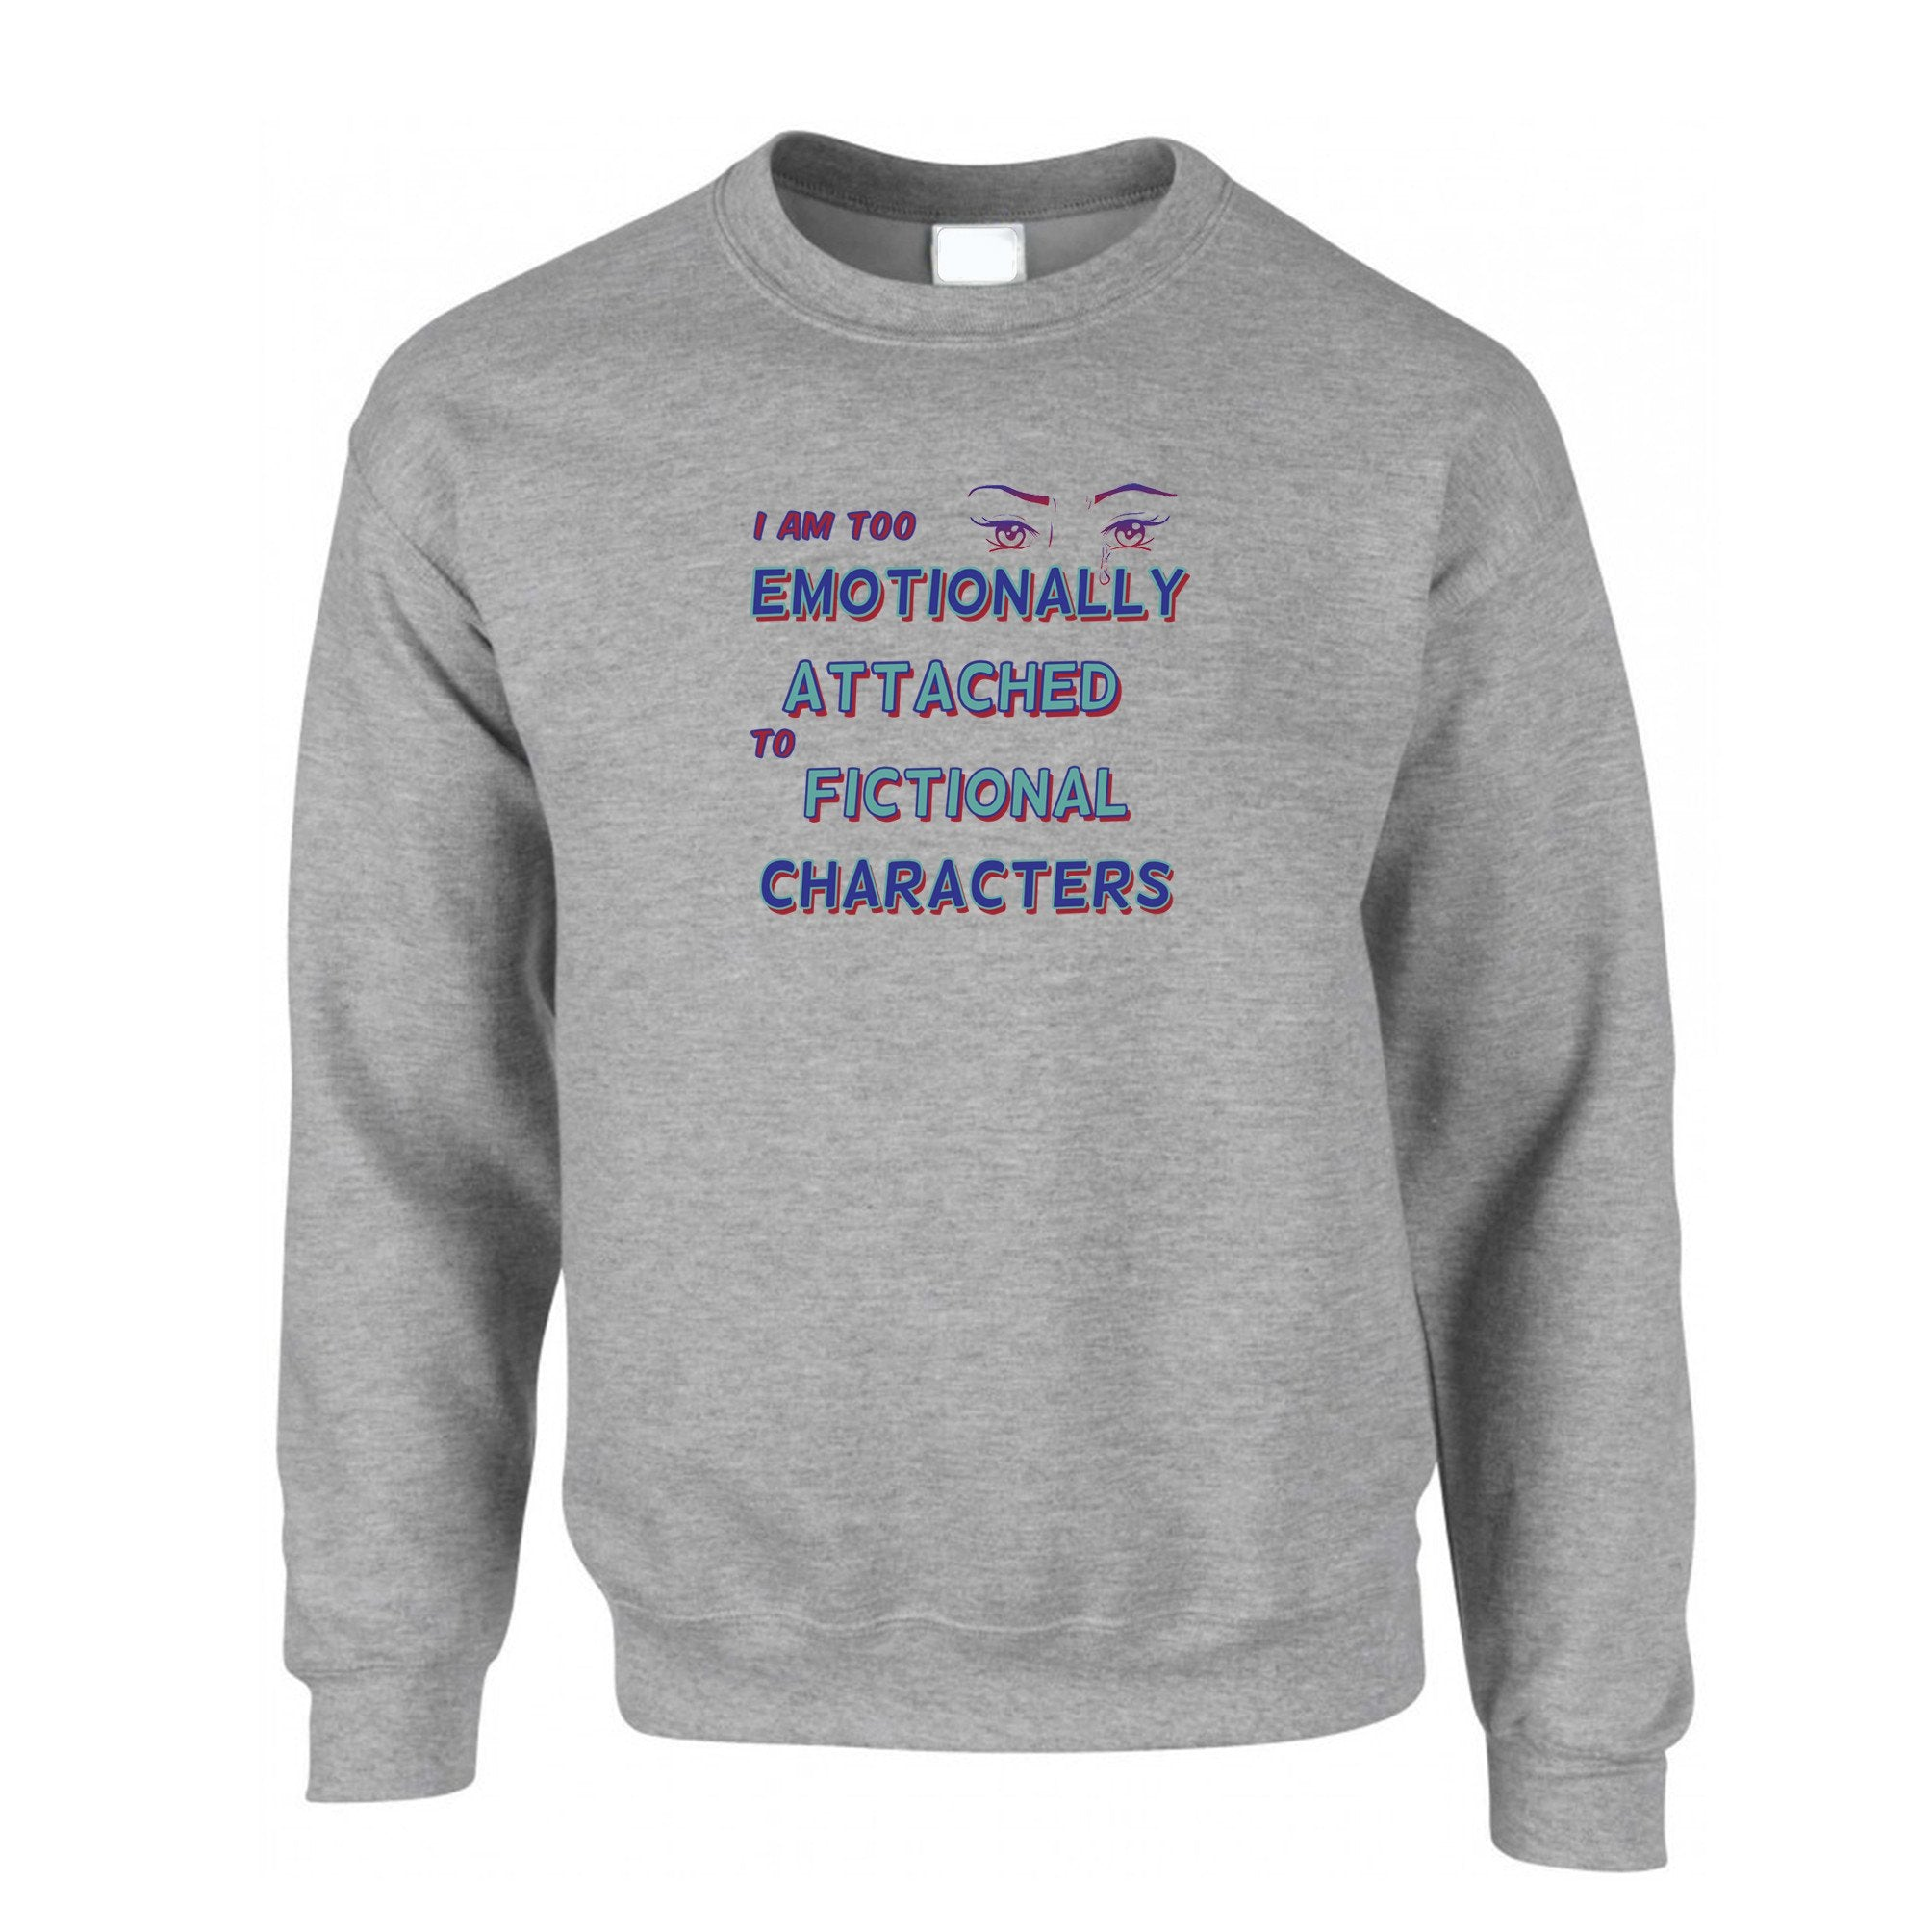 Novelty Jumper Too Attached To Fictional Characters Sweatshirt Sweater